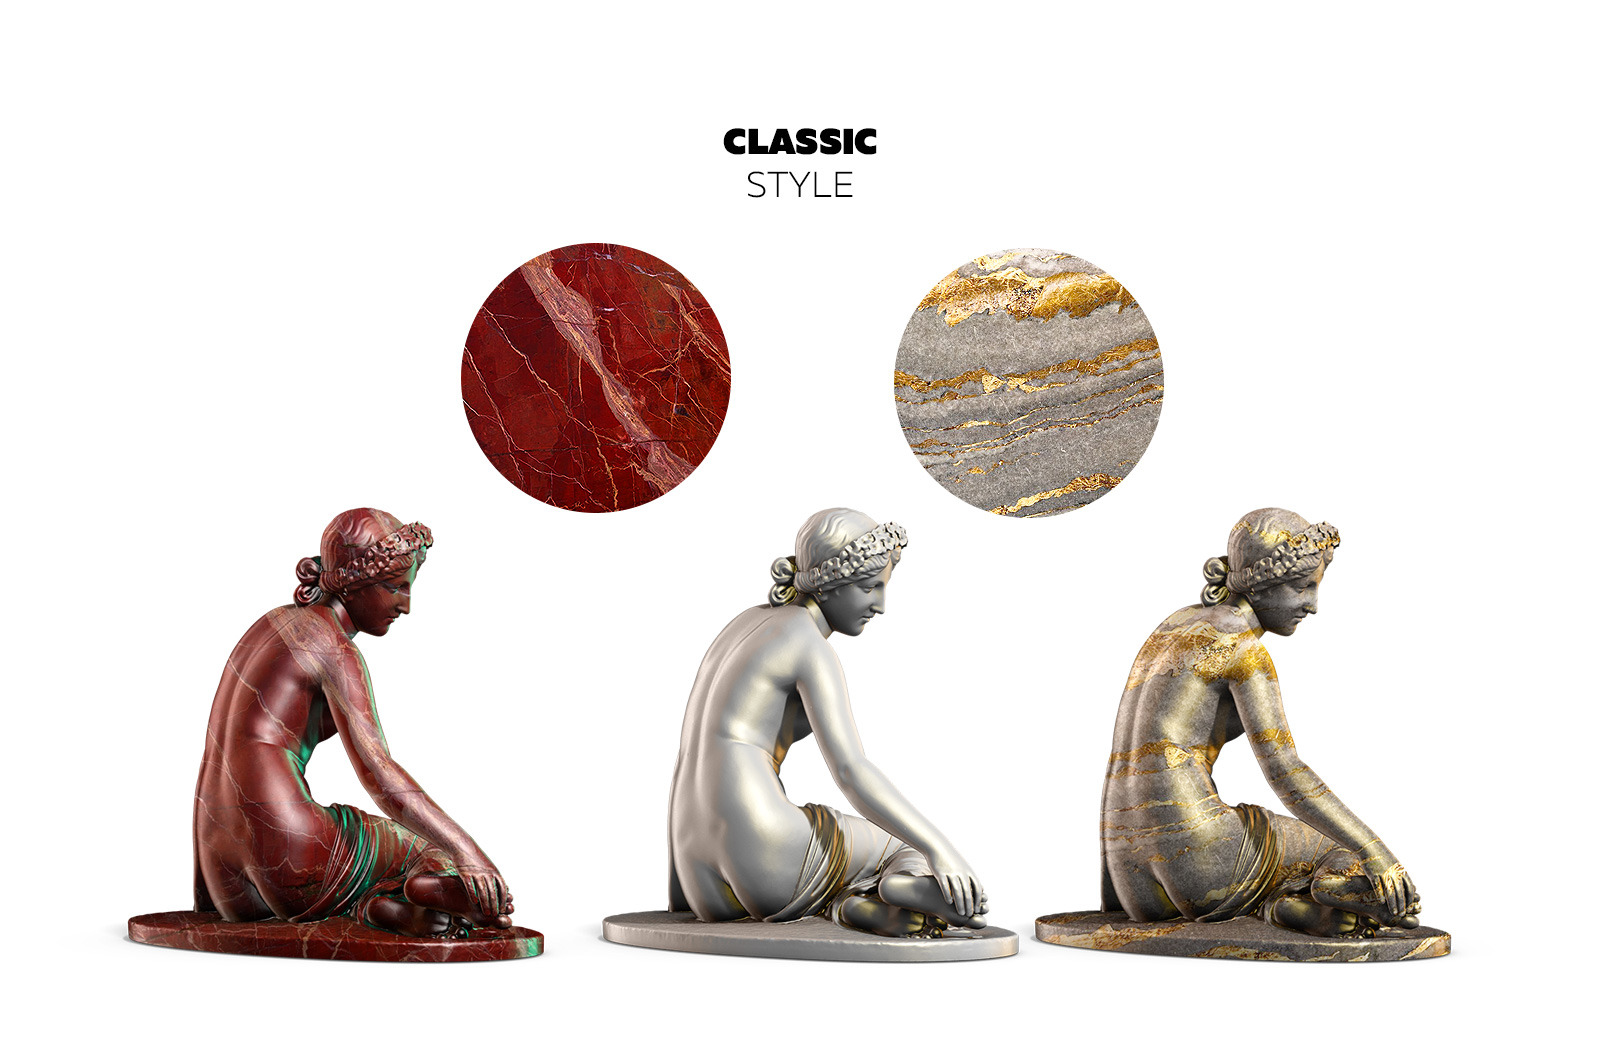 Collection of 130 Sculptures Statue #4, for branding and design of your product